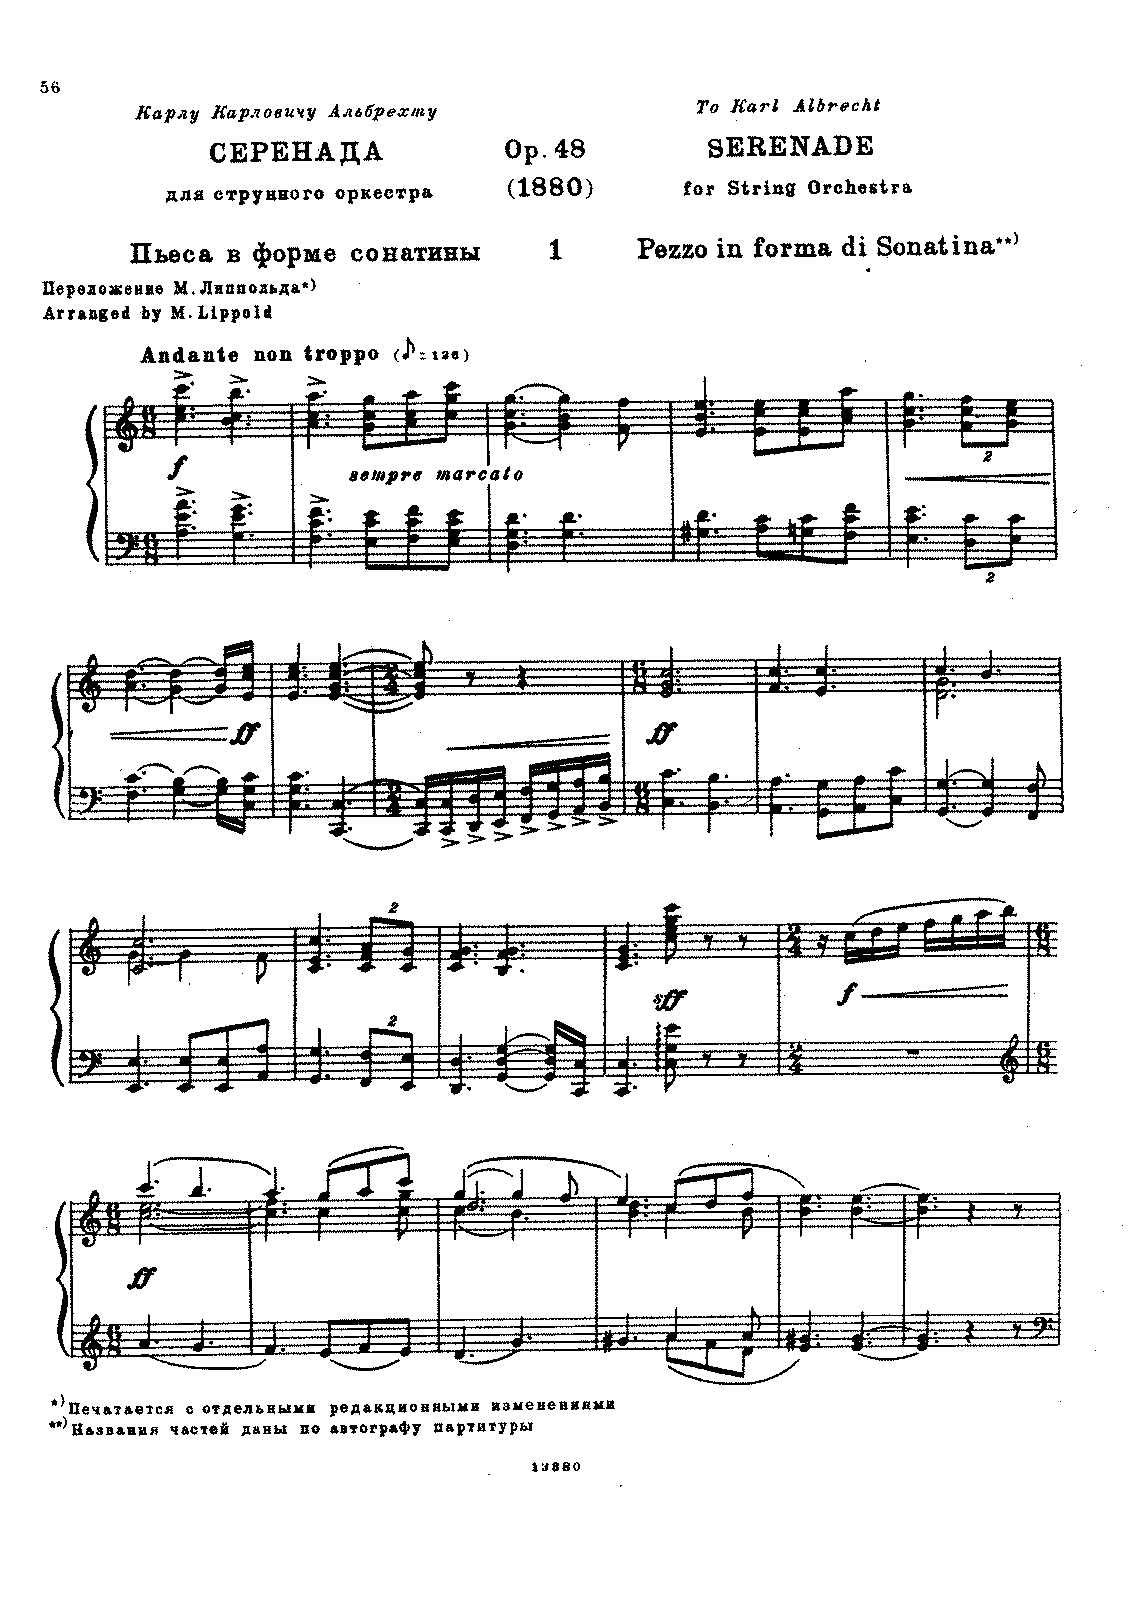 Tchaikovsky - Serenade for String Orchestra - I. Pezzo in forma de Sonatina (Arr. for piano by M.Lippold).pdf